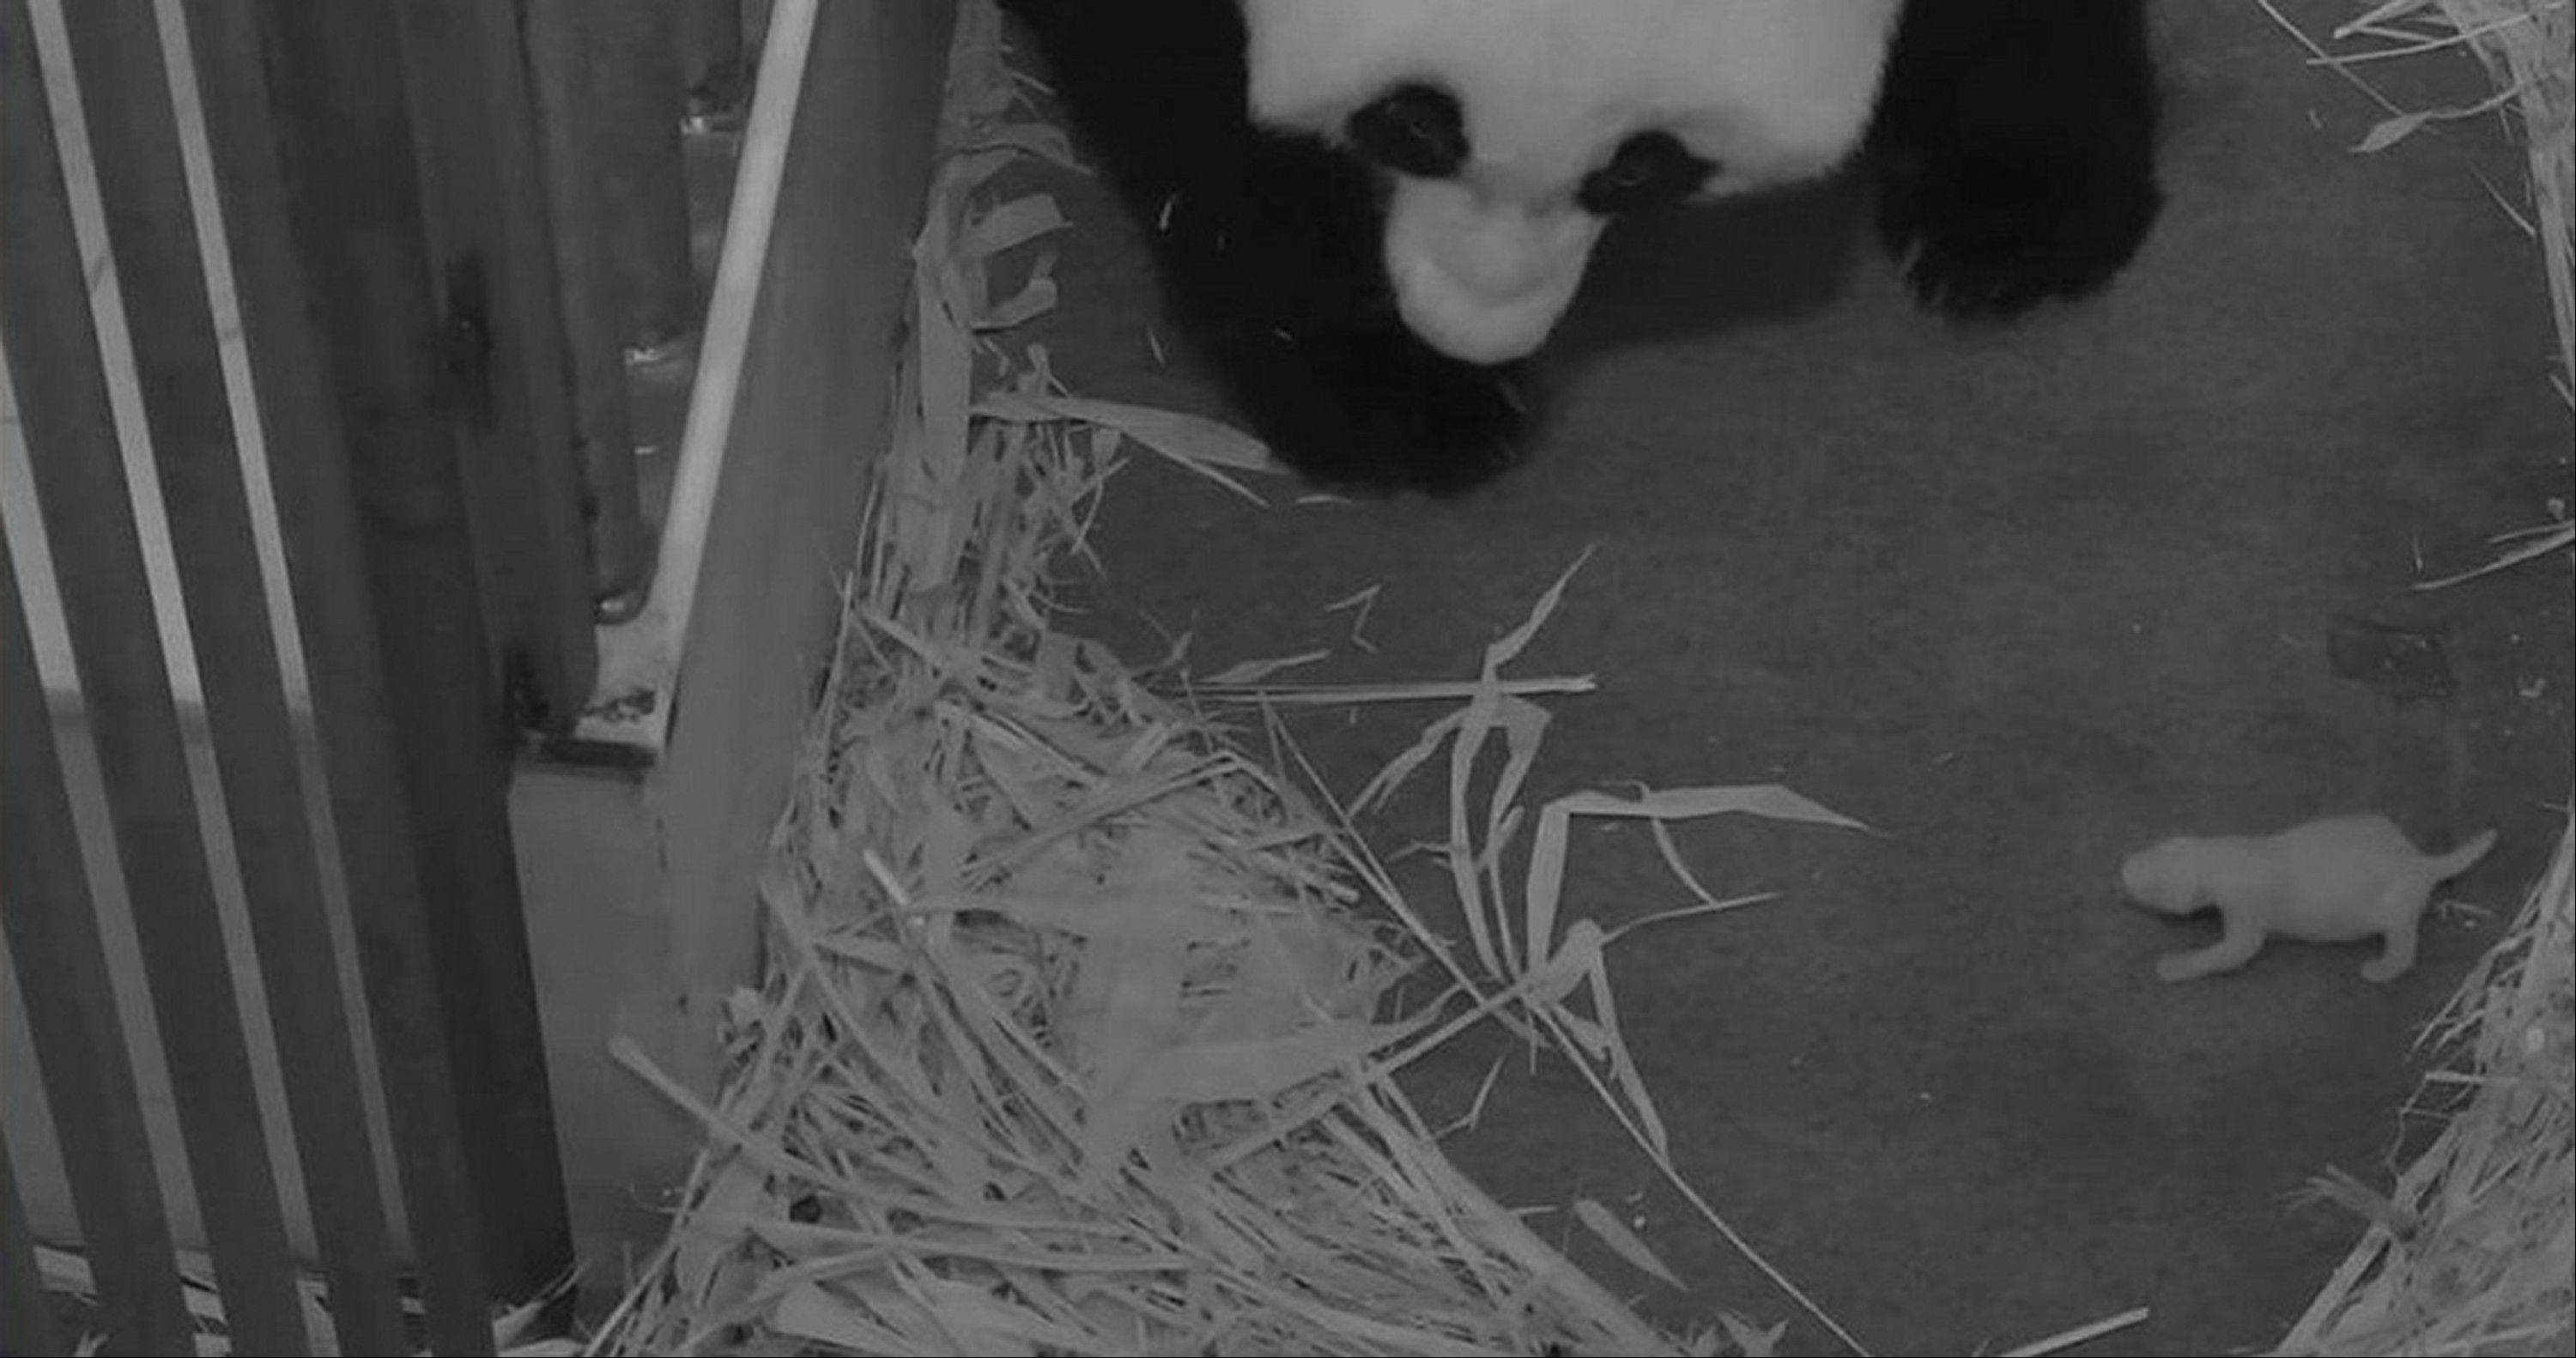 This handout photo provided by the Smithsonian's National Zoo, taken Aug. 29, shows the zoo's panda mother, Mei Xiang, with her cub. The zoo said Thursday its 2-week-old giant panda cub is female. The Washington zoo also revealed Thursday that the cub's father is National Zoo panda Tian Tian.